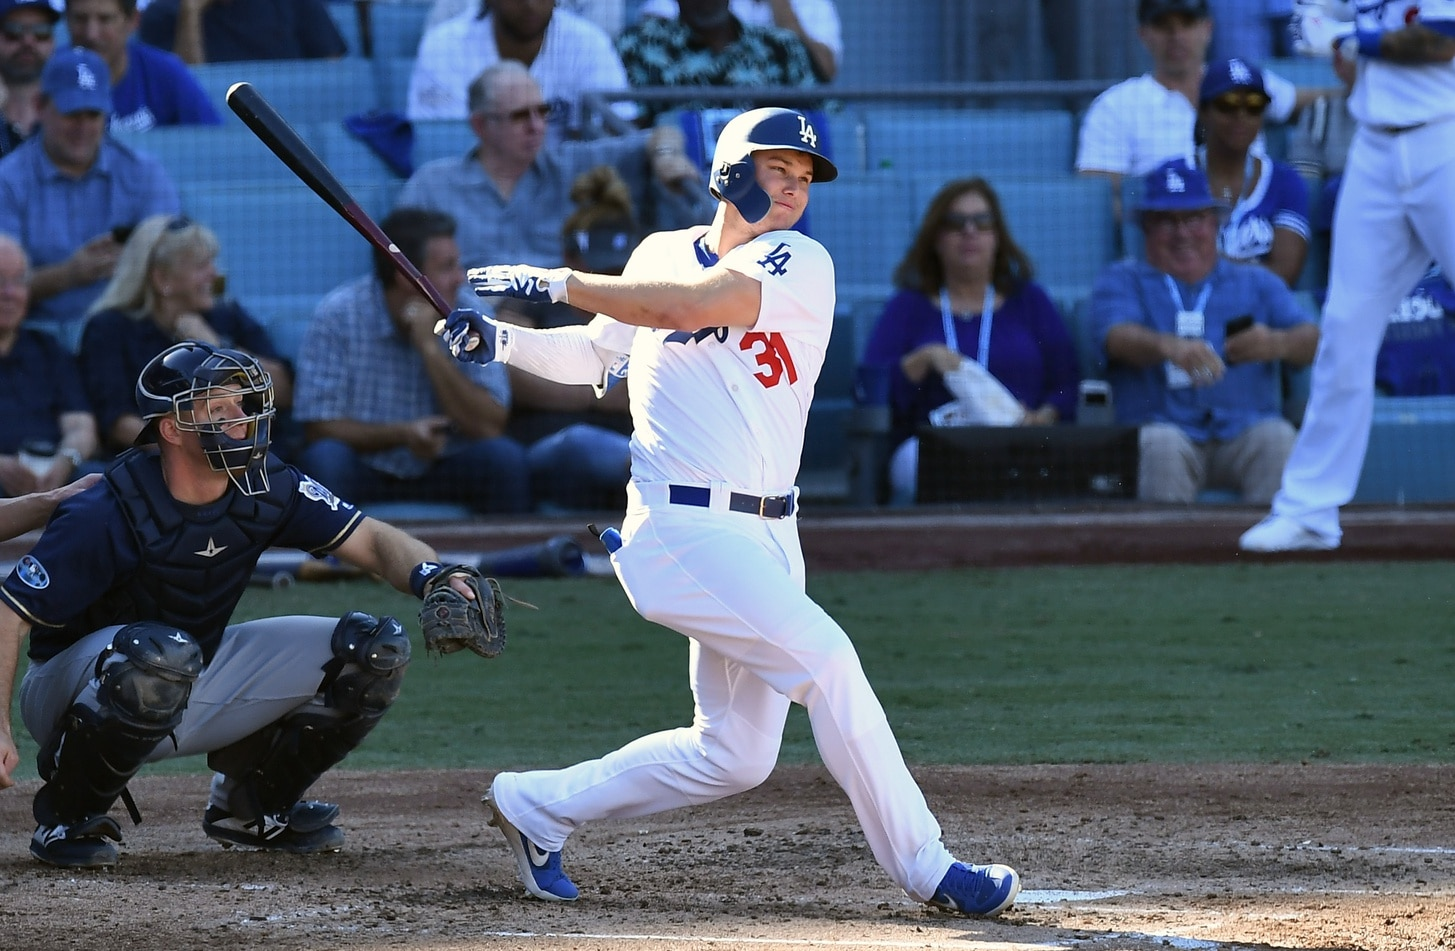 Dodgers' Joc Pederson blasts two home runs on his birthday